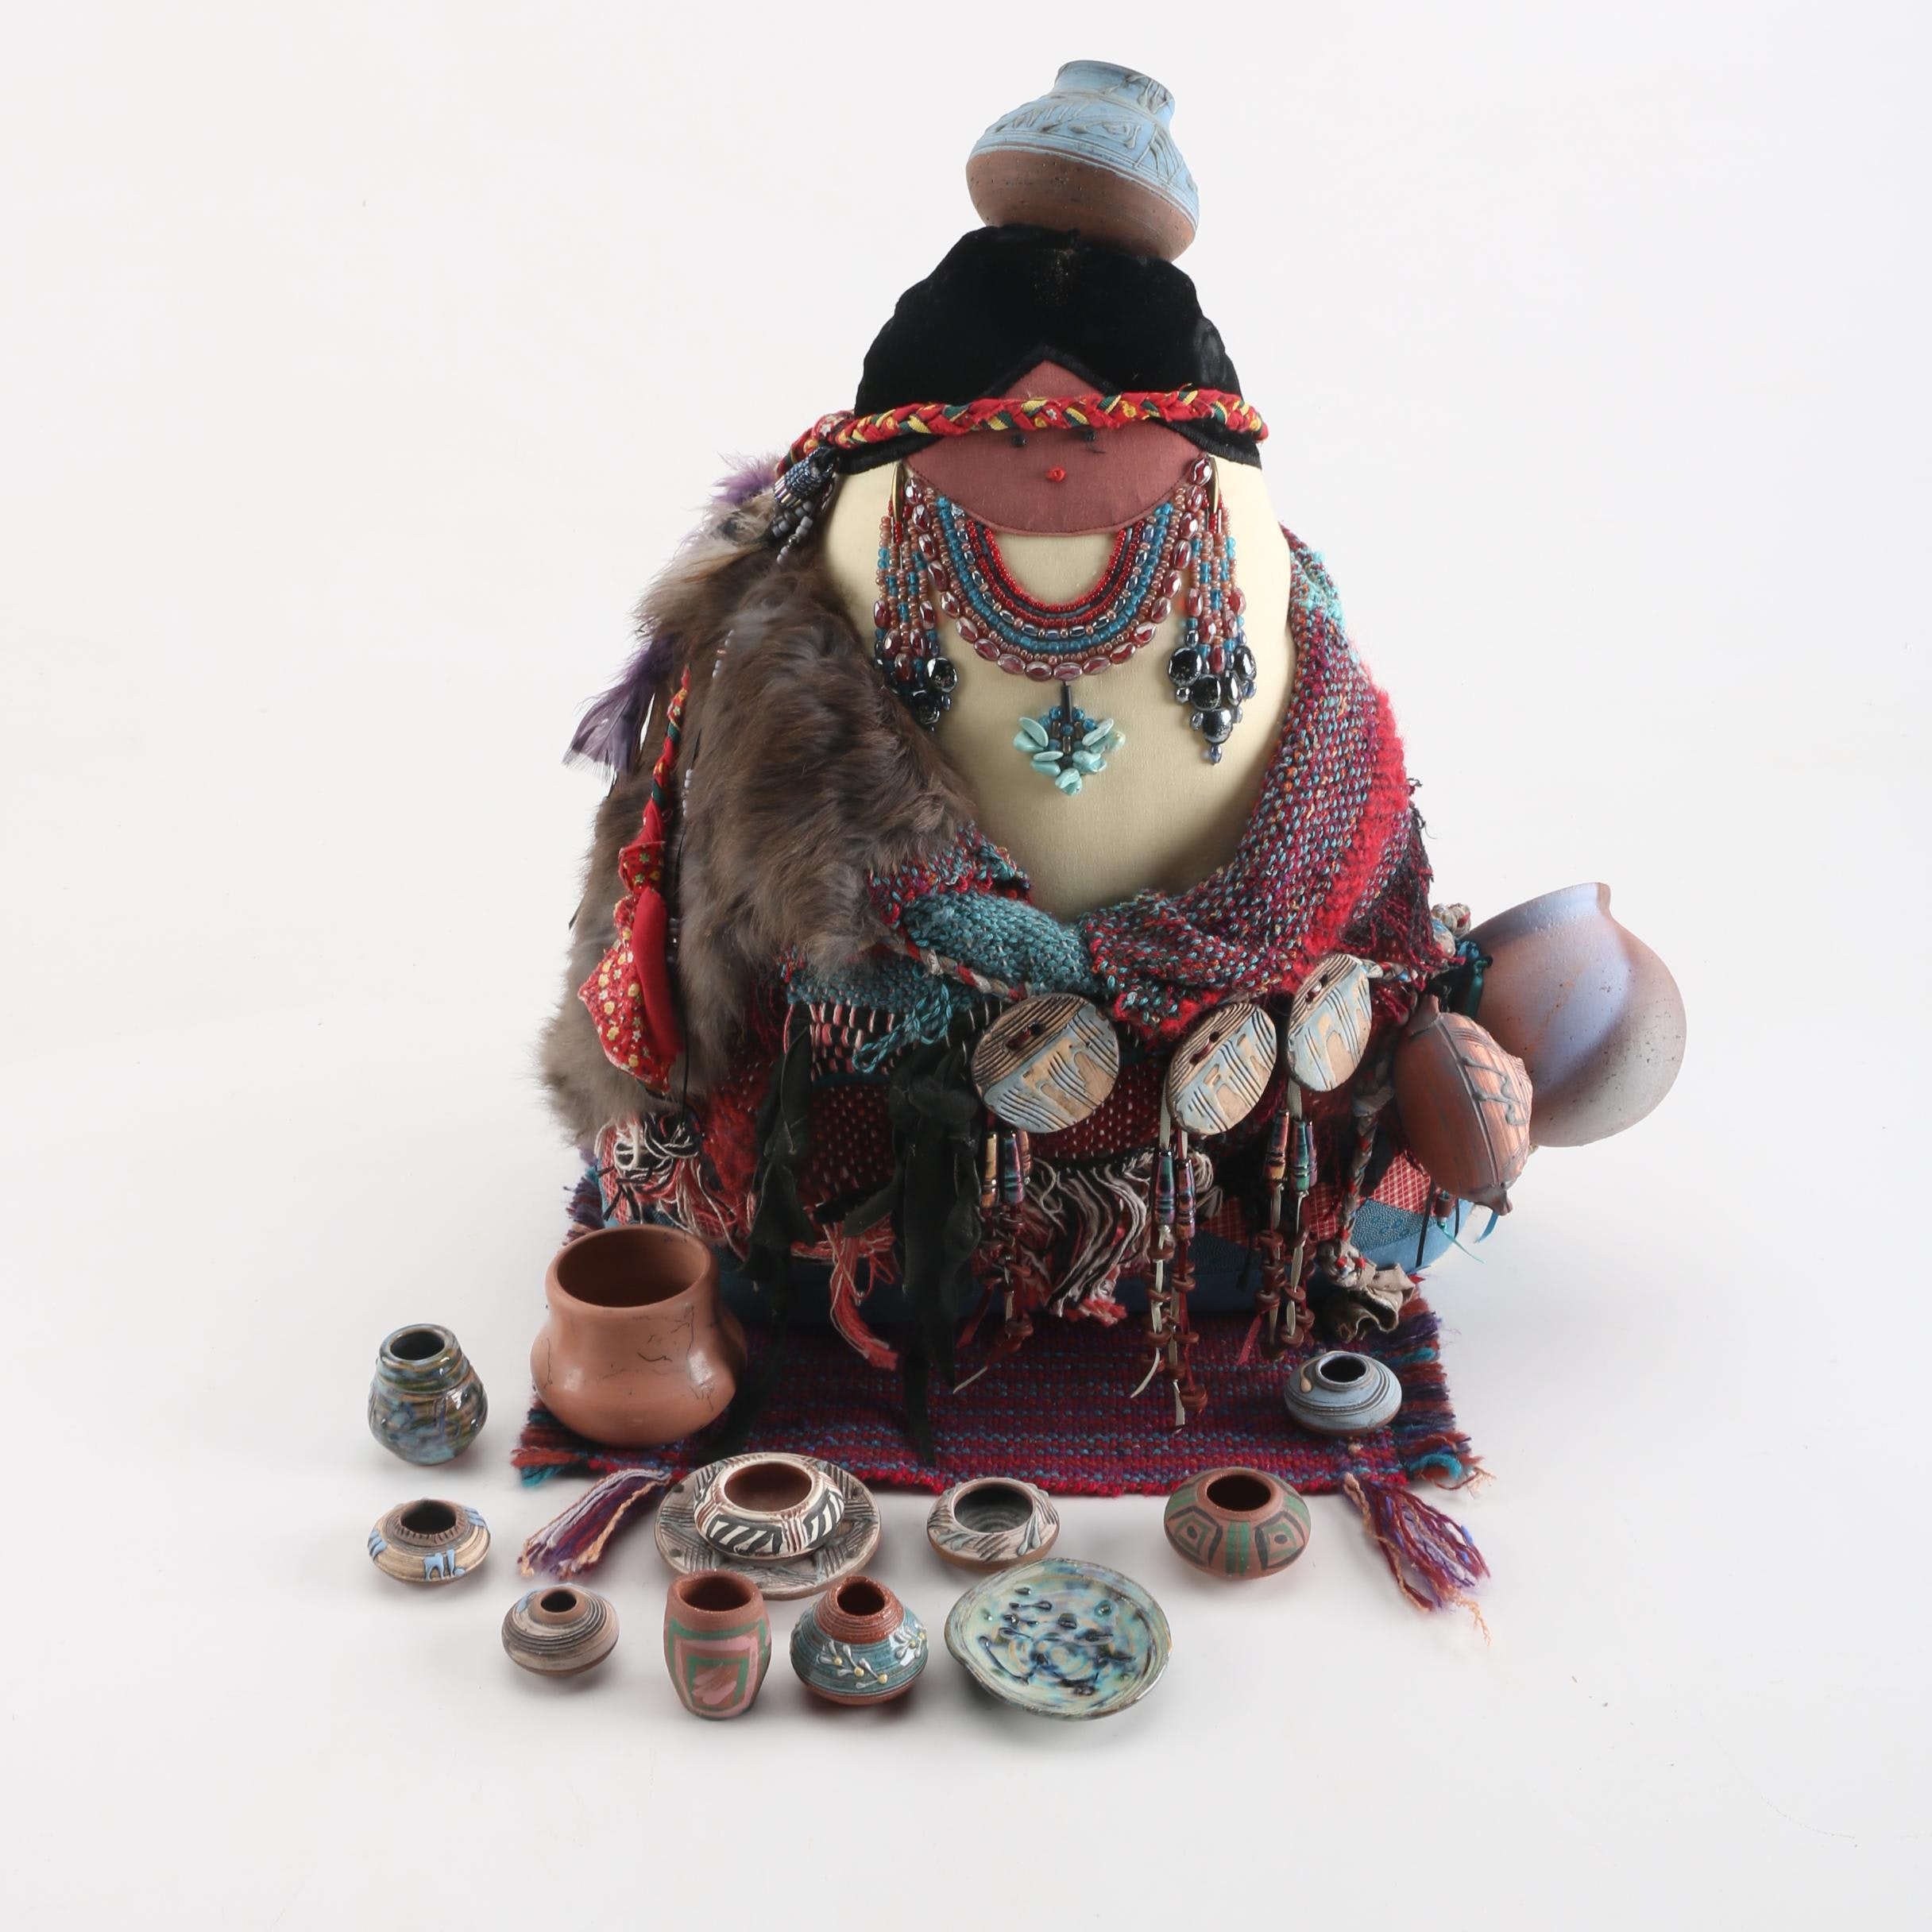 South American Soft Sculpture with Weaving and Miniature Pots